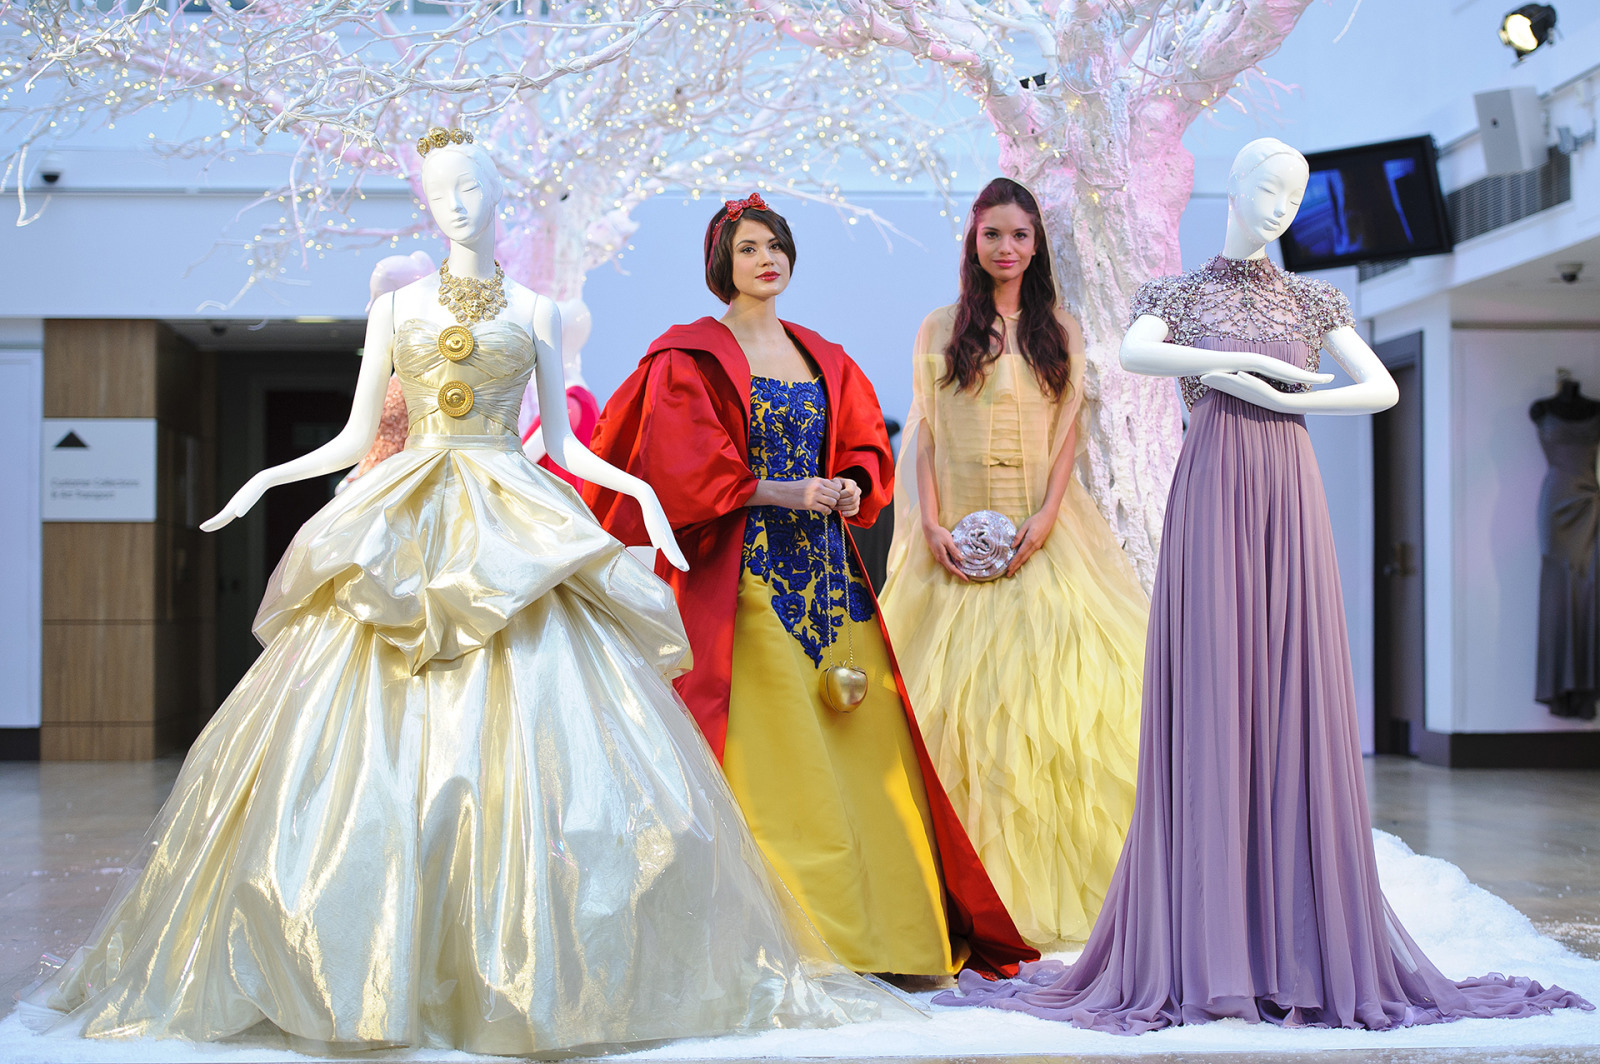 Disney Princess couture gowns - Disney Princess couture ... - photo#49